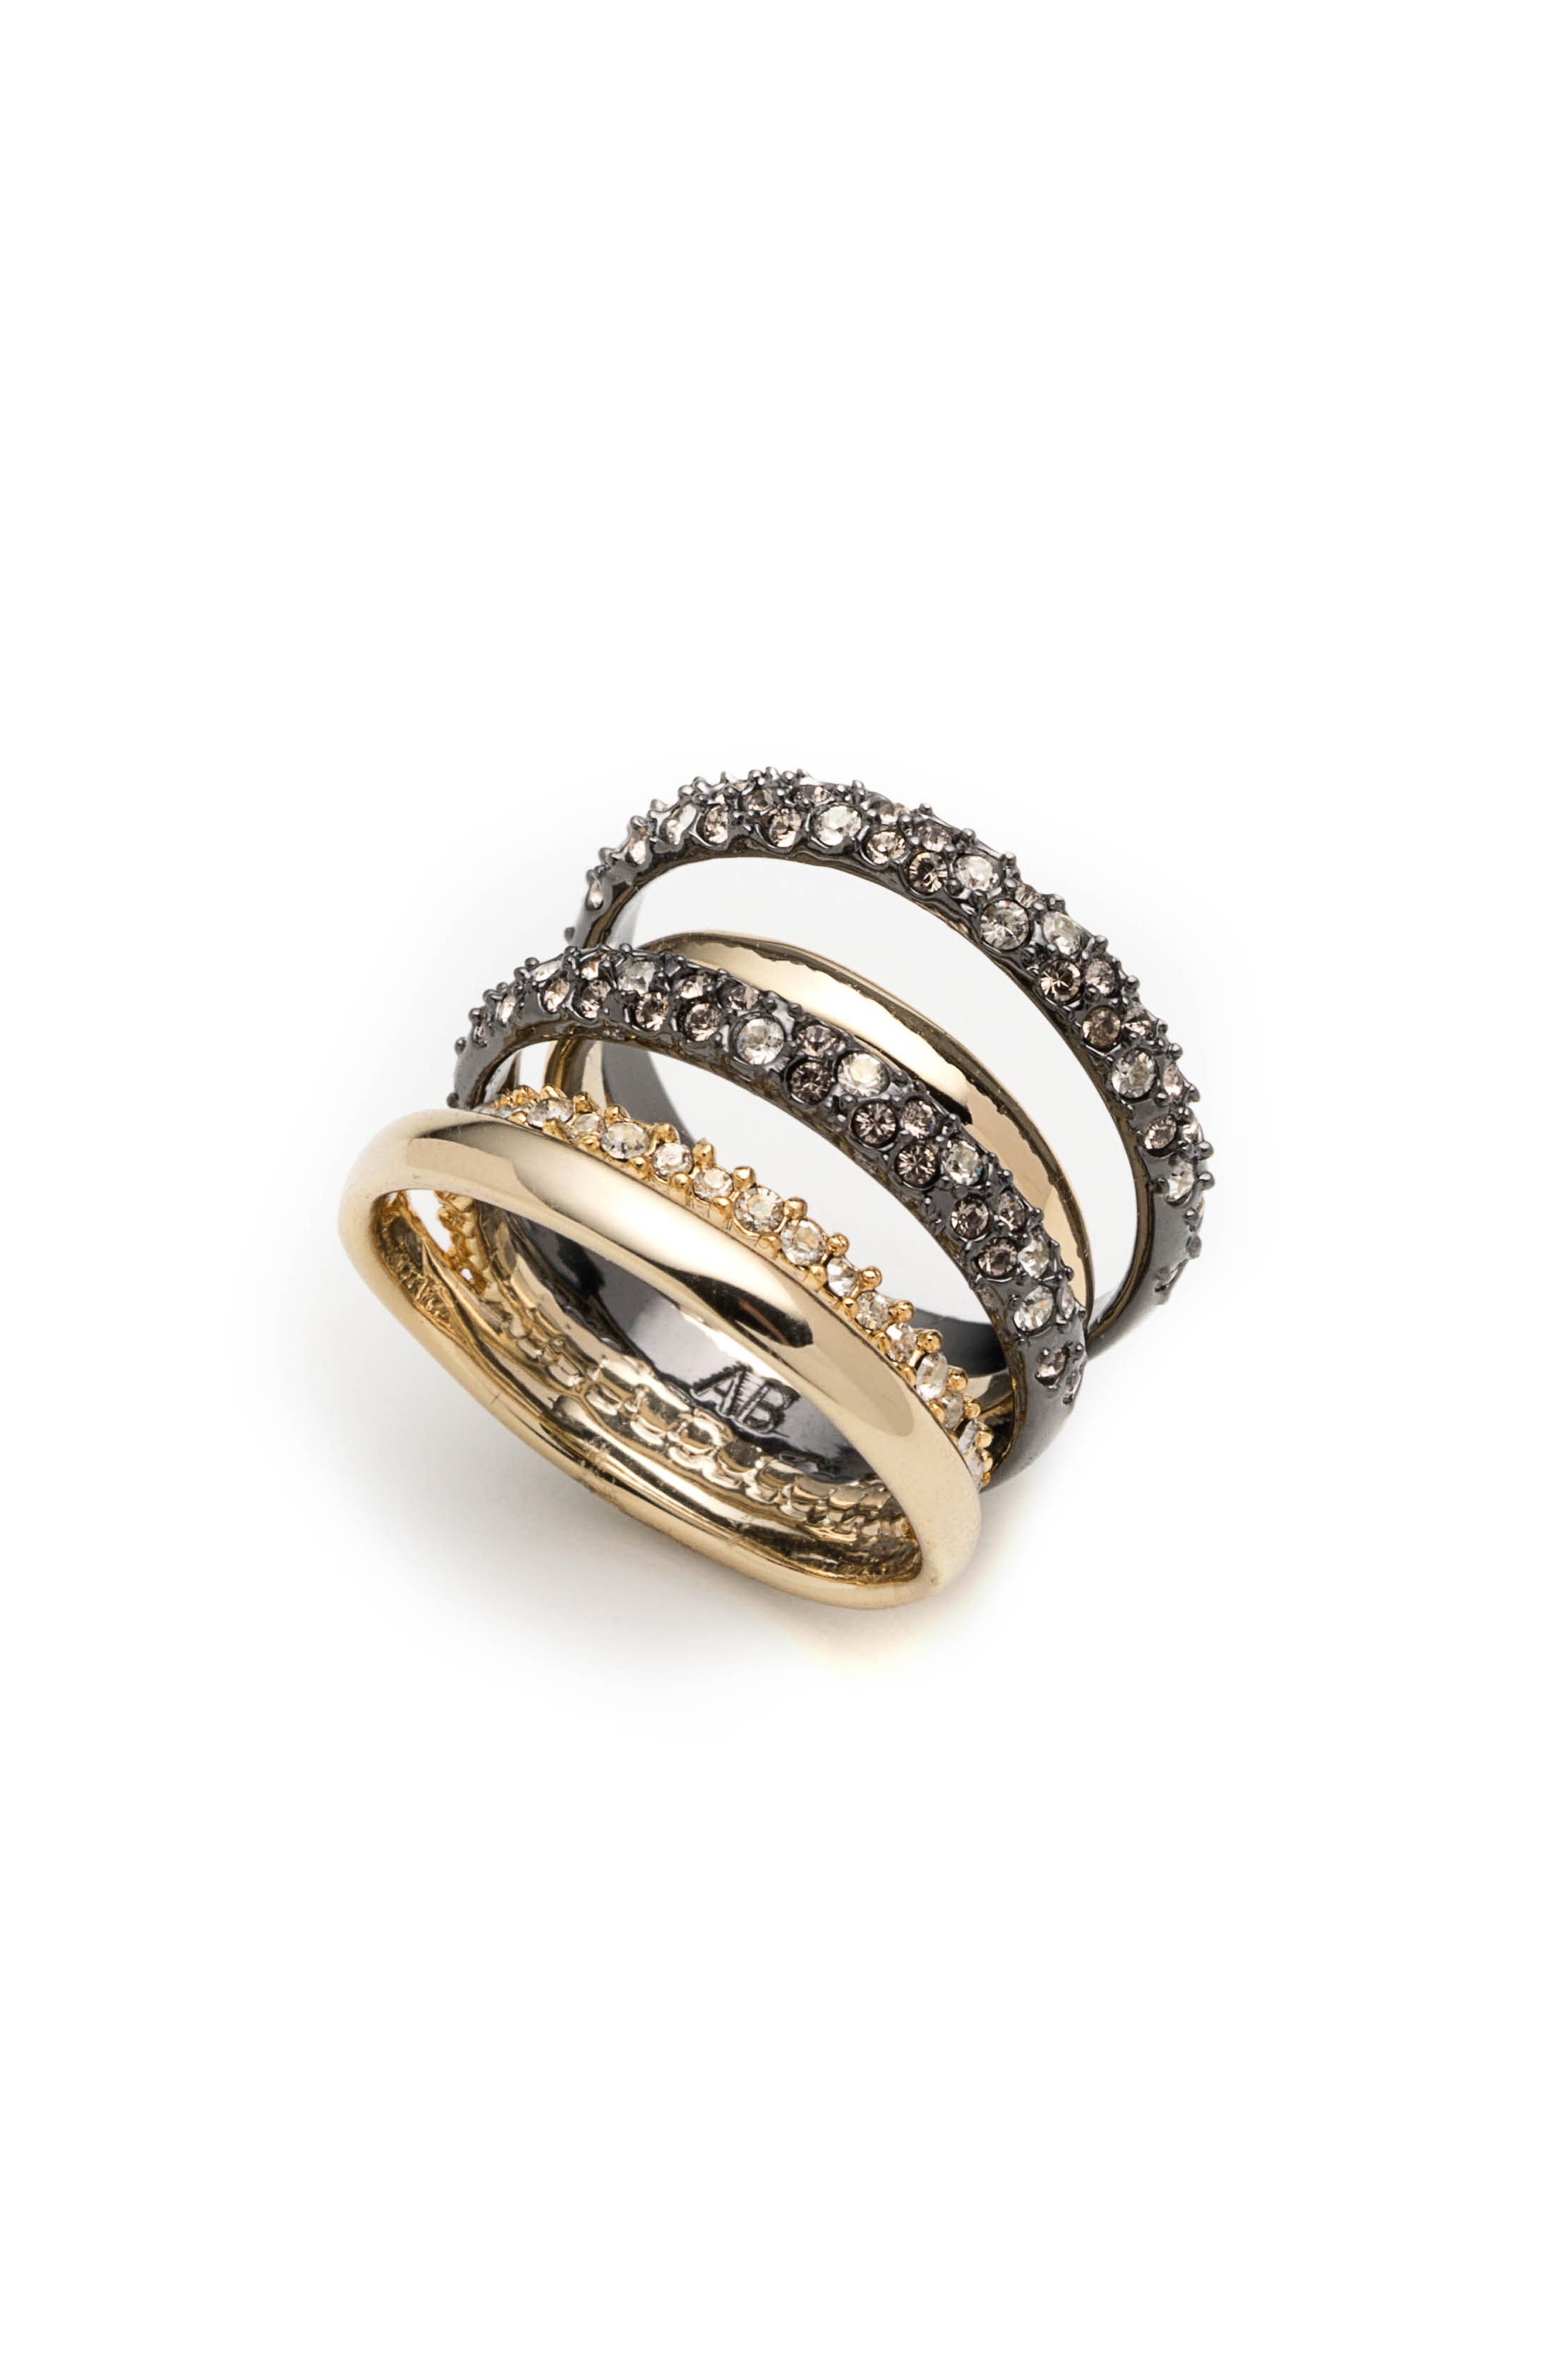 alexis elements rings jewelry ring metallic gold normal bittar crystal lyst product gallery in